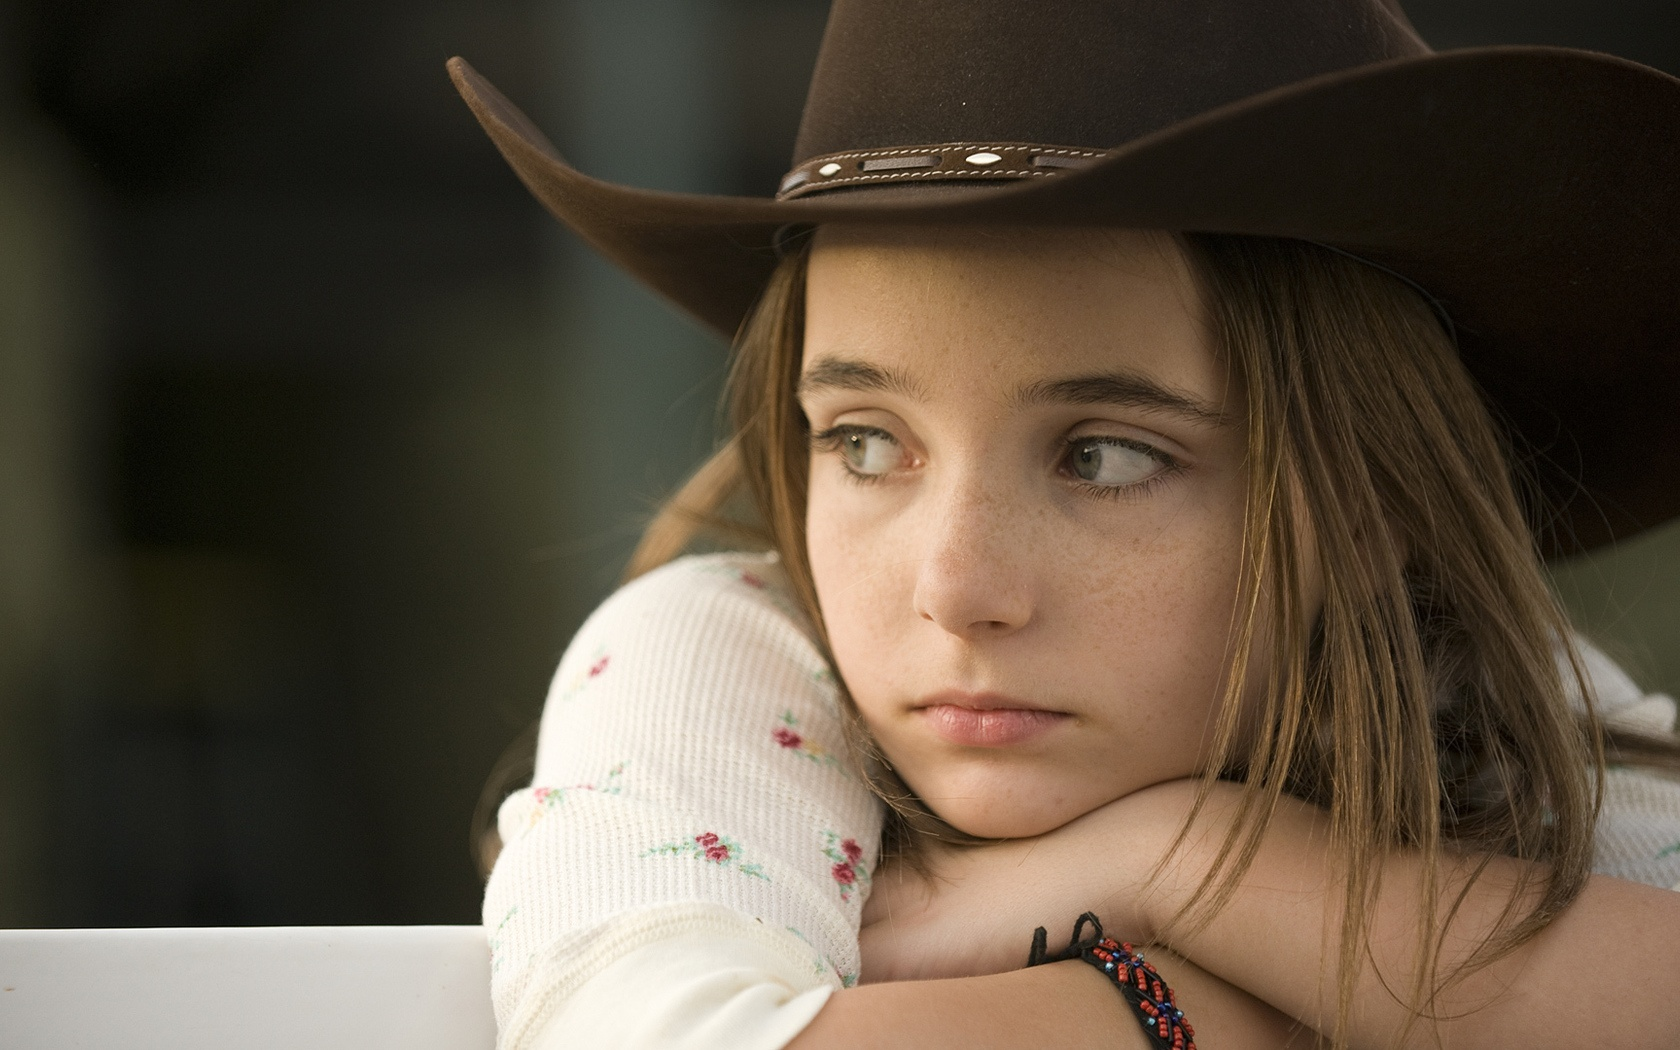 Sad Girl HD Wallpaper Sad Girl Pictures Cool Wallpapers 1680x1050